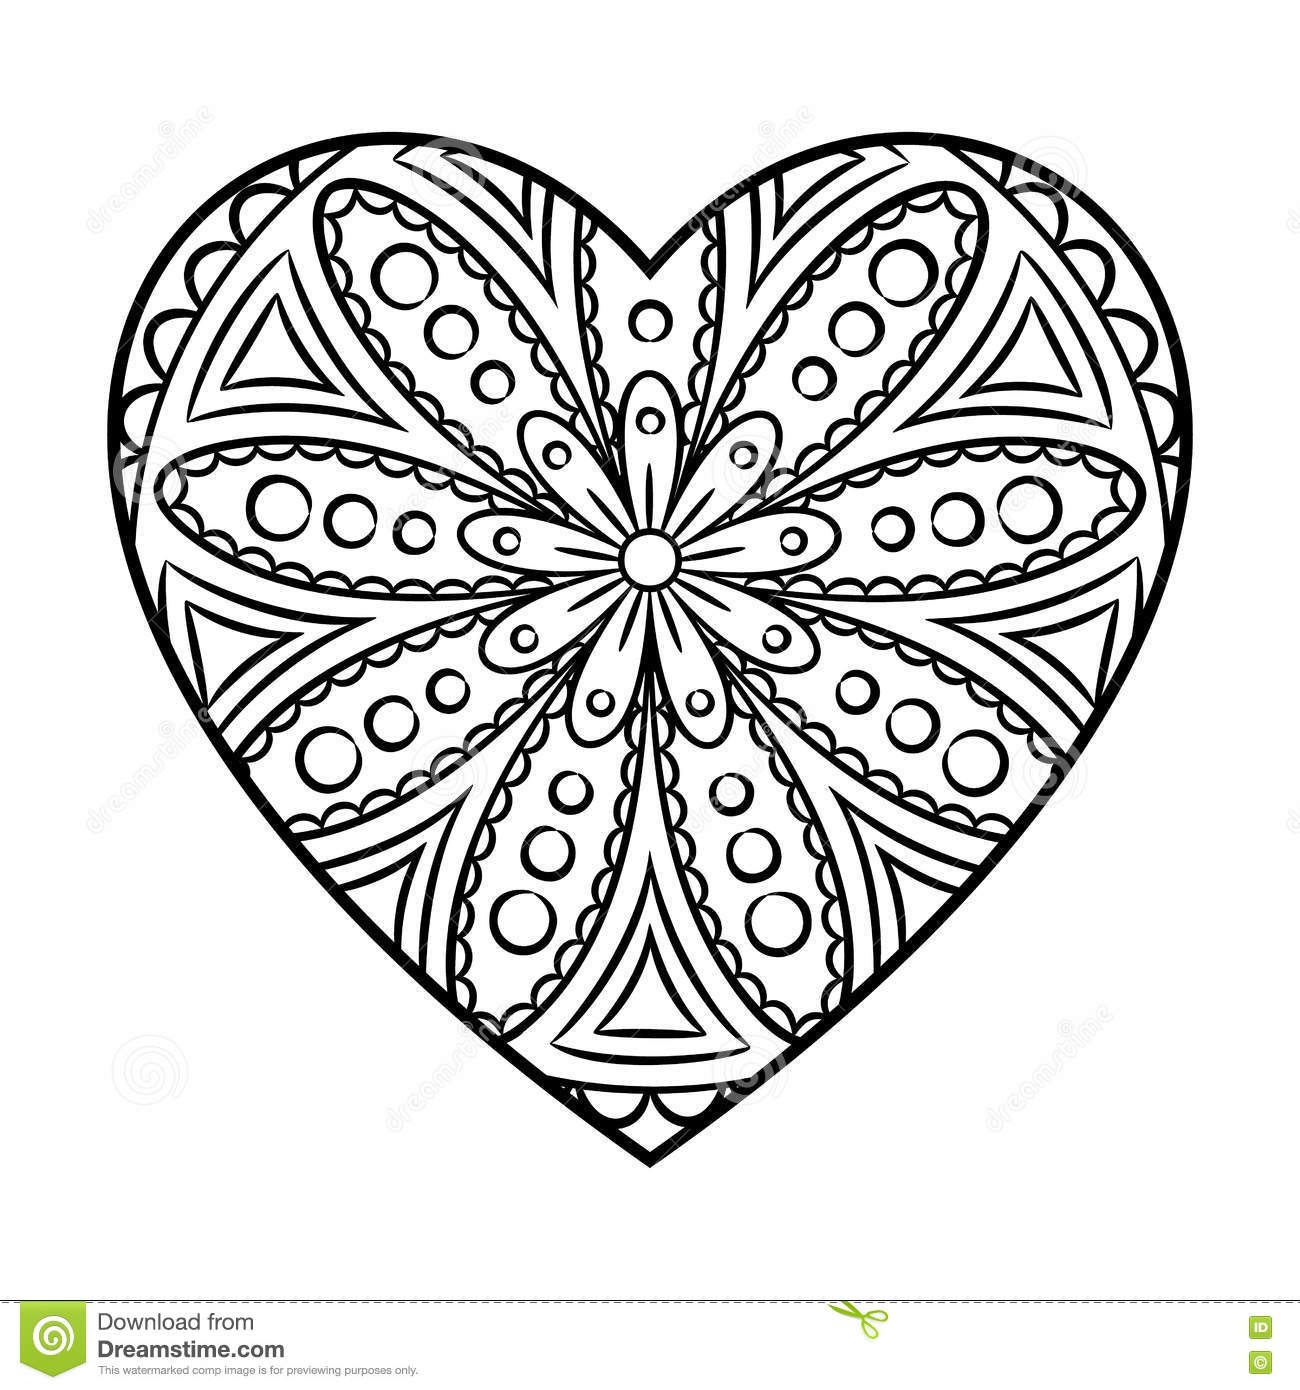 Angry face likewise Coloriage Visage Diable further Emojis In Love Coloring Page kiss Women Emoji Coloring Pages as well Bulldog Clipart Image 2632 also Heart Mandala Clipart. on how to draw devil emoji